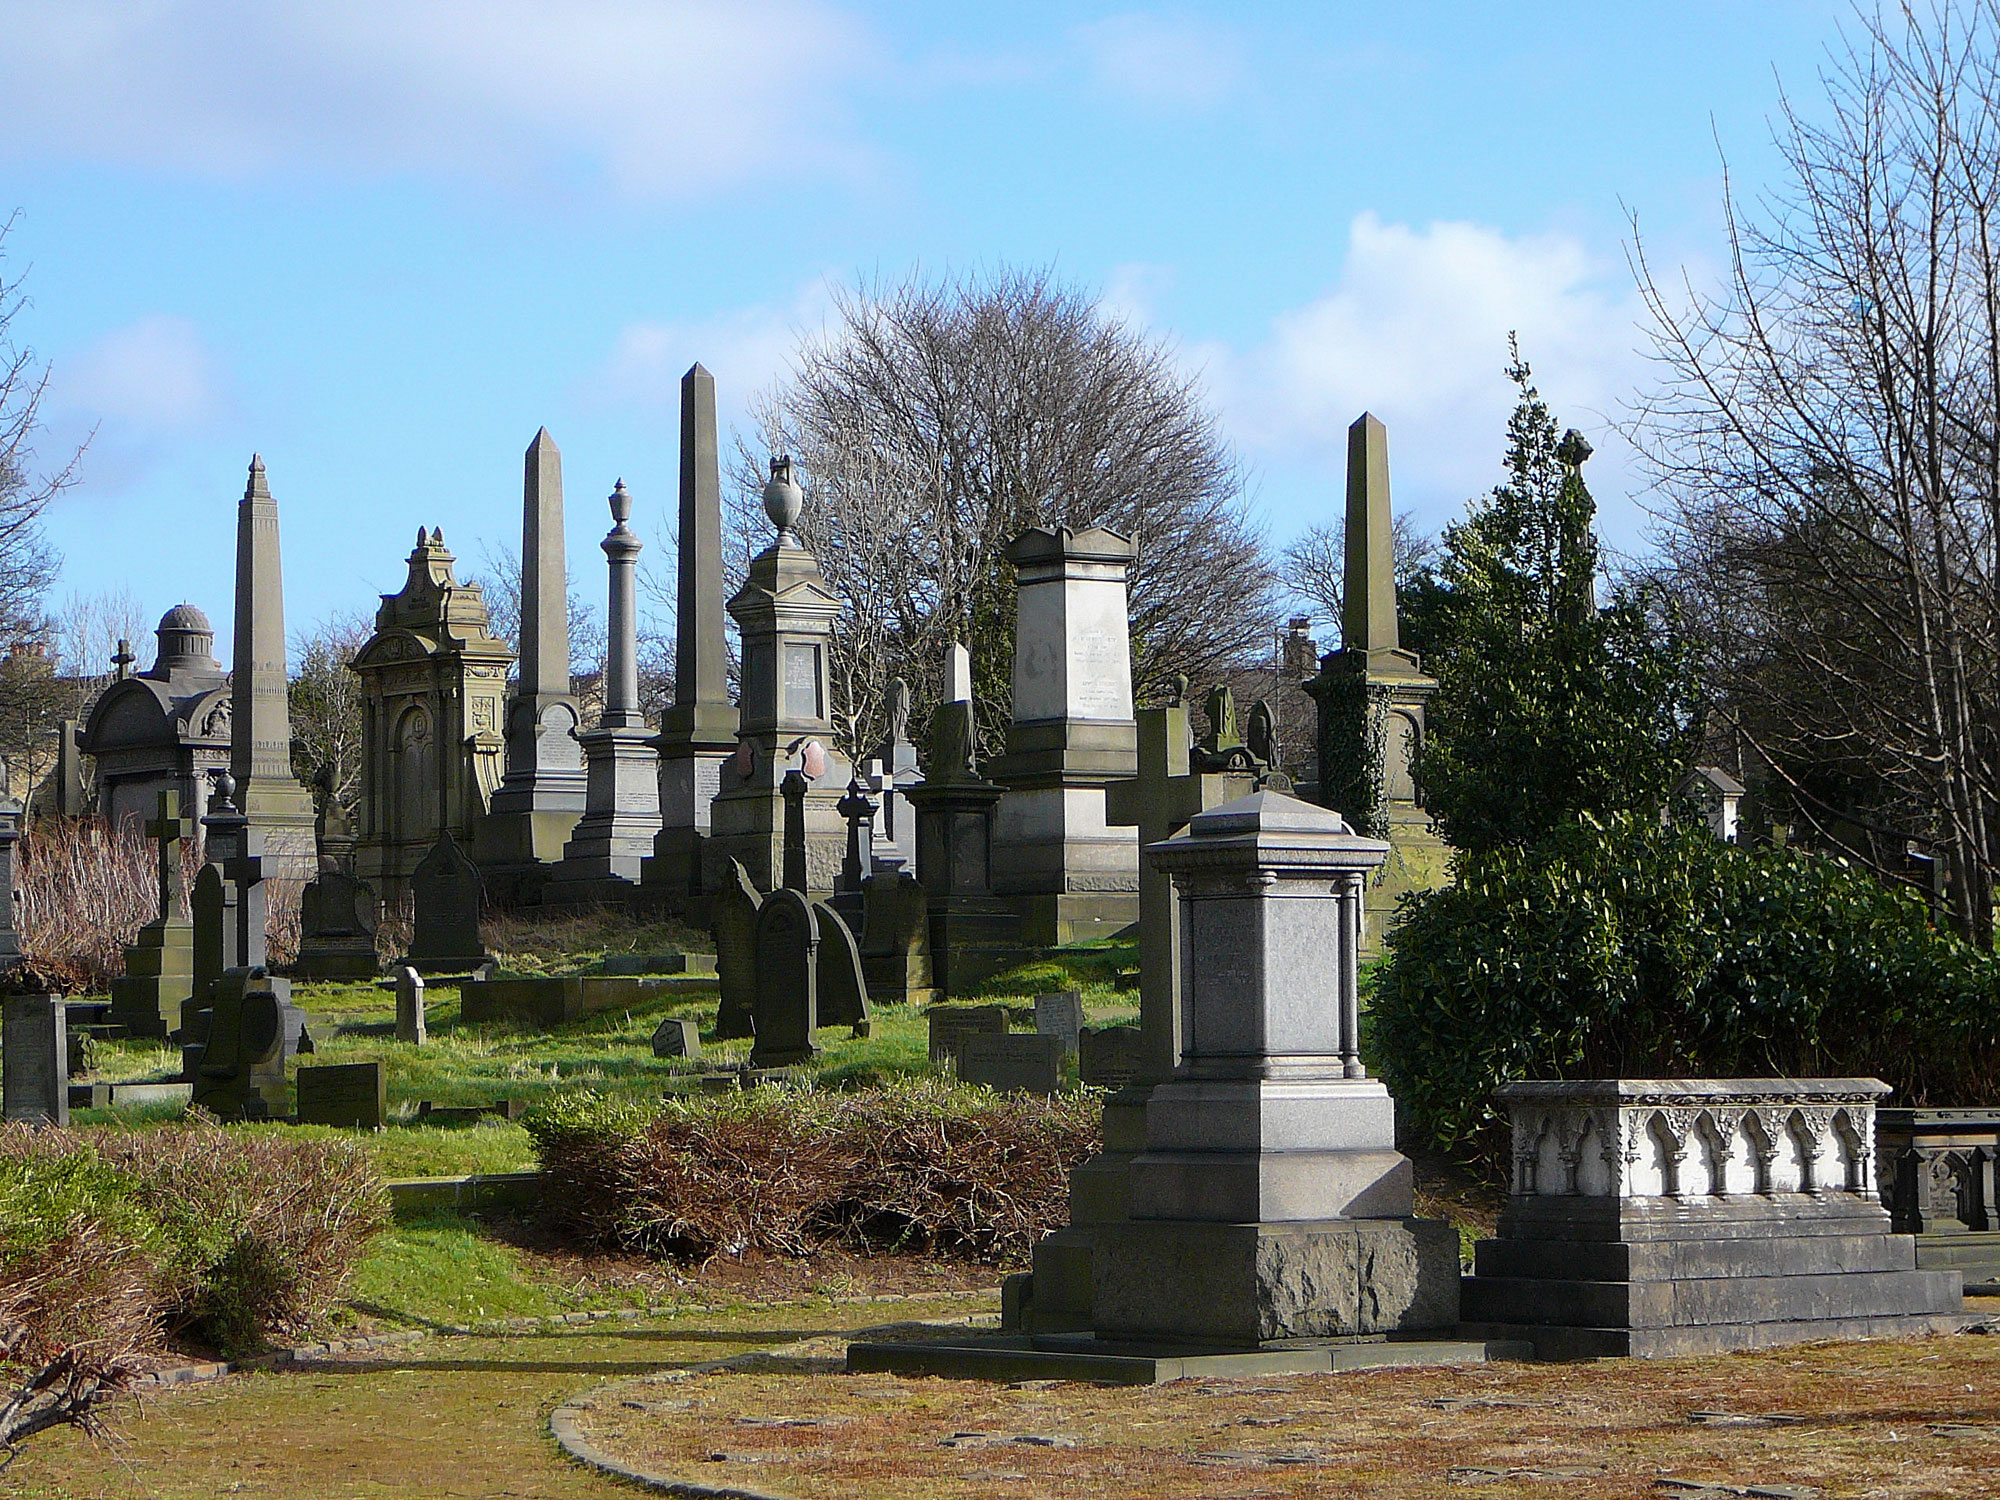 photograph of monuments in a cemetery on a bright day